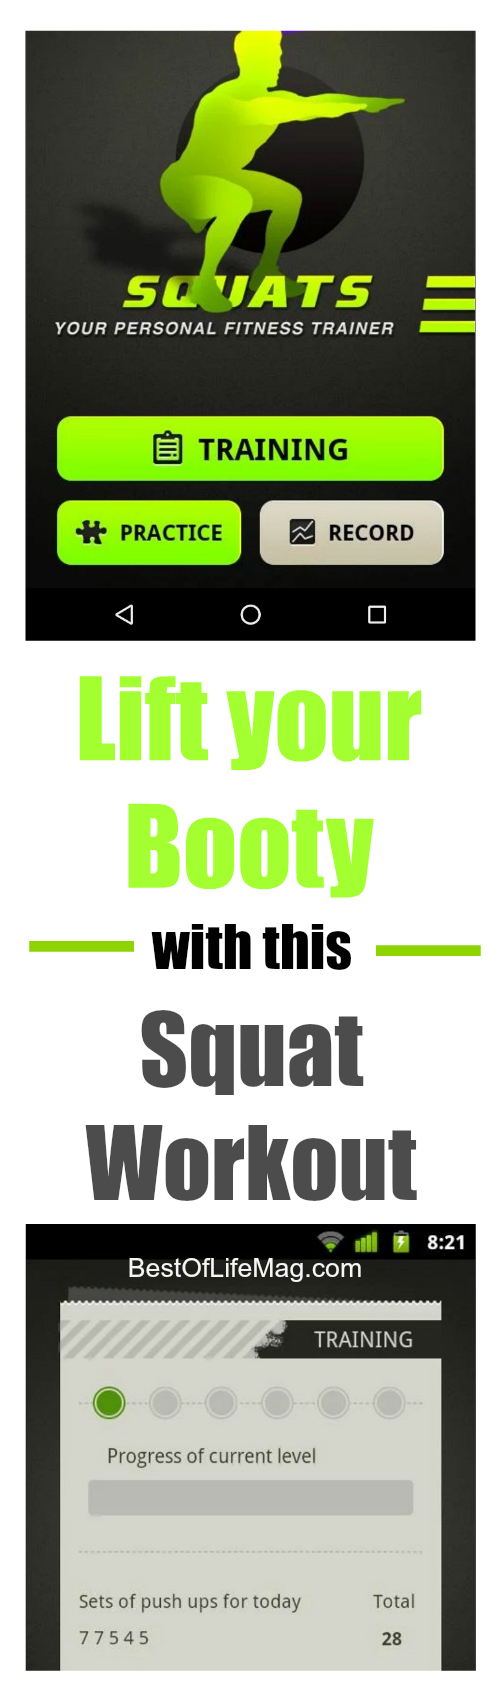 Lift your booty with the Squats Workout app that can help you monitor your calories, stay motivated, and tone that body once and for all!